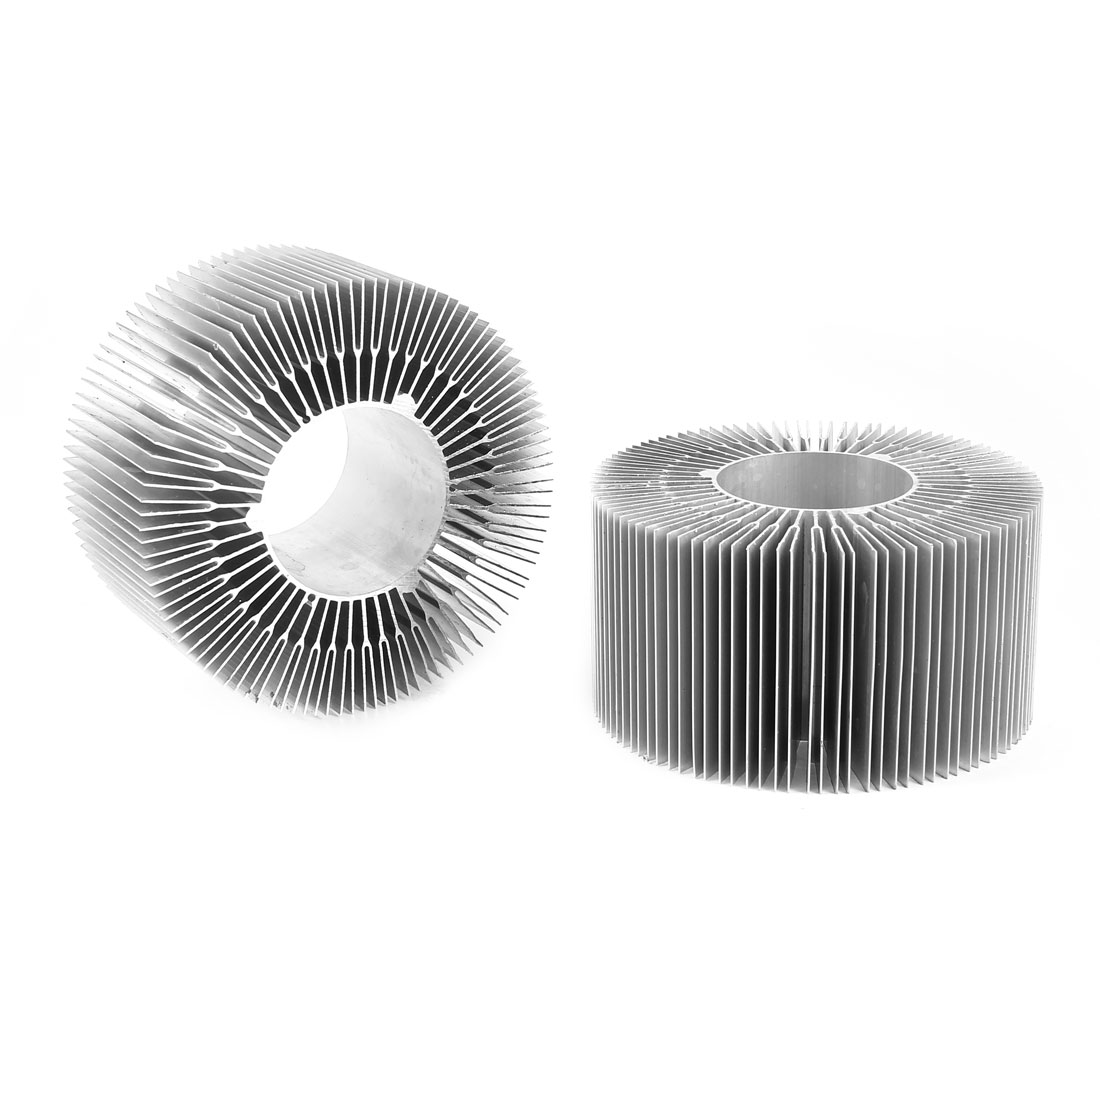 2 Pieces Round Shape 115mm OD 50mm ID 60mm Height LED Light Heatsink Cooling Fin